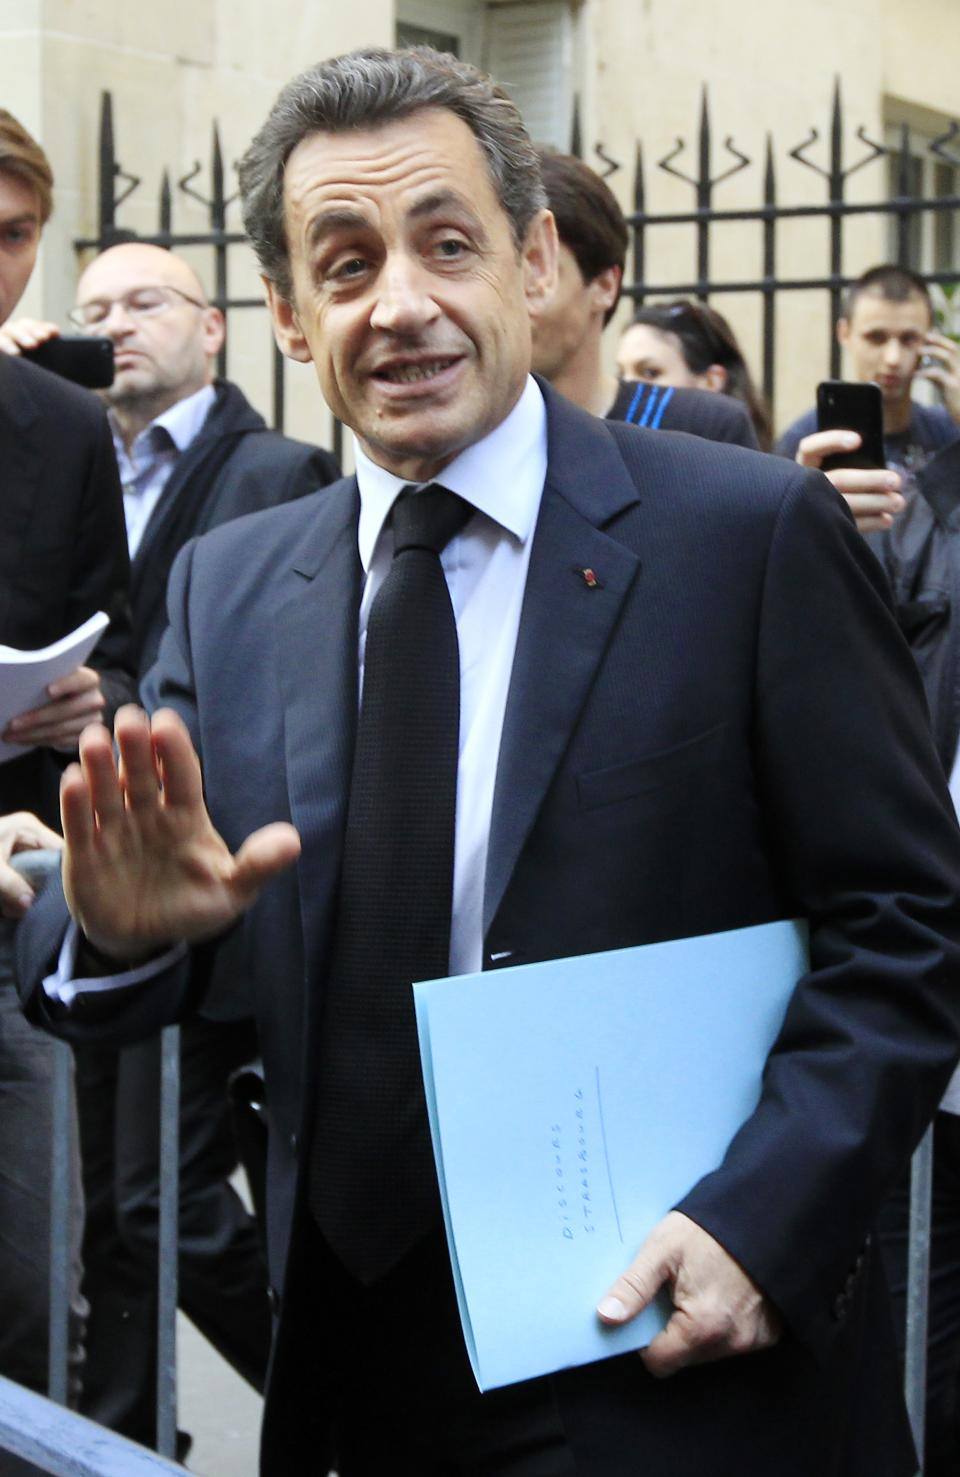 French President Nicolas Sarkozy gestures to supporters near his campaign party headquarters, Paris, Thursday, March 22, 2012. Sarkozy said Thursday an investigation was under way to see if the suspect in a series of radical Islam-inspired killings had any accomplices. (AP Photo/Jacques Brinon)